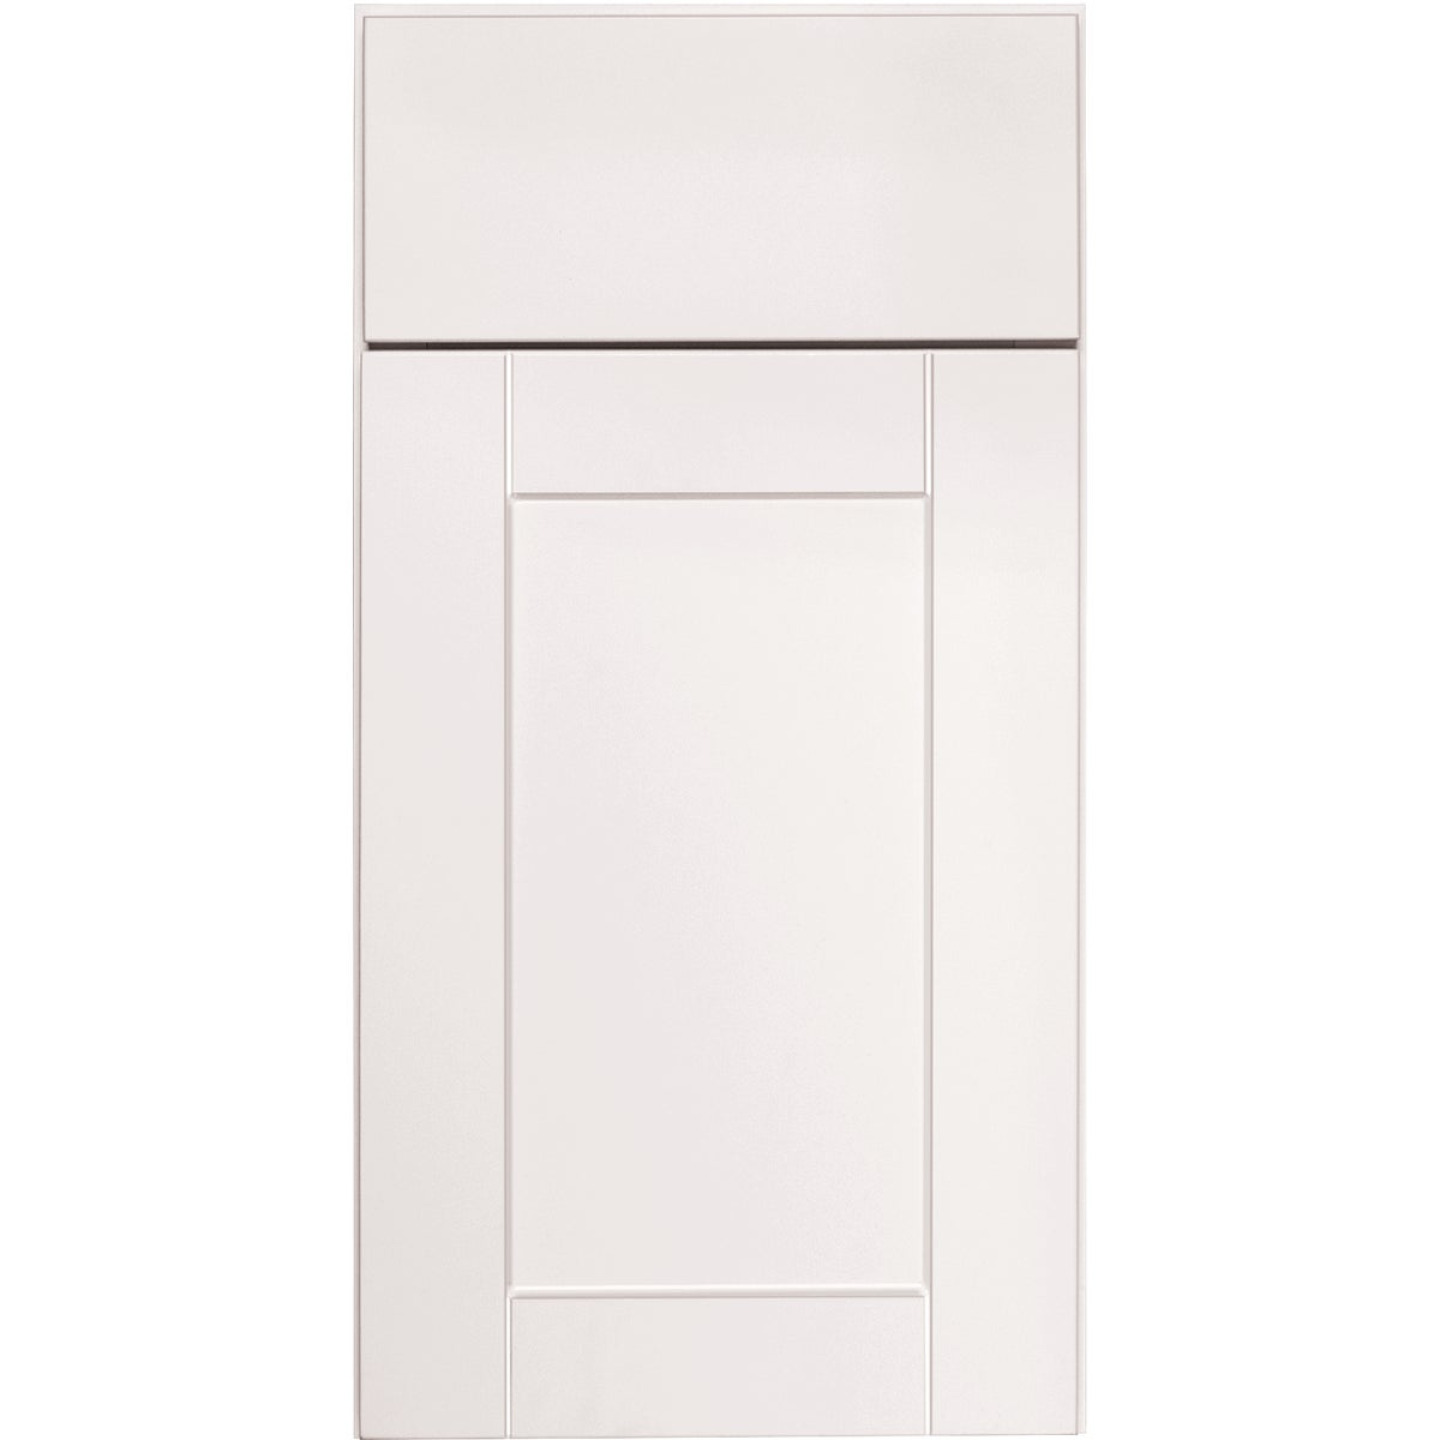 Continental Cabinets Andover Shaker 24 In. W x 30 In. H x 12 In. D White Thermofoil Wall Kitchen Cabinet Image 3